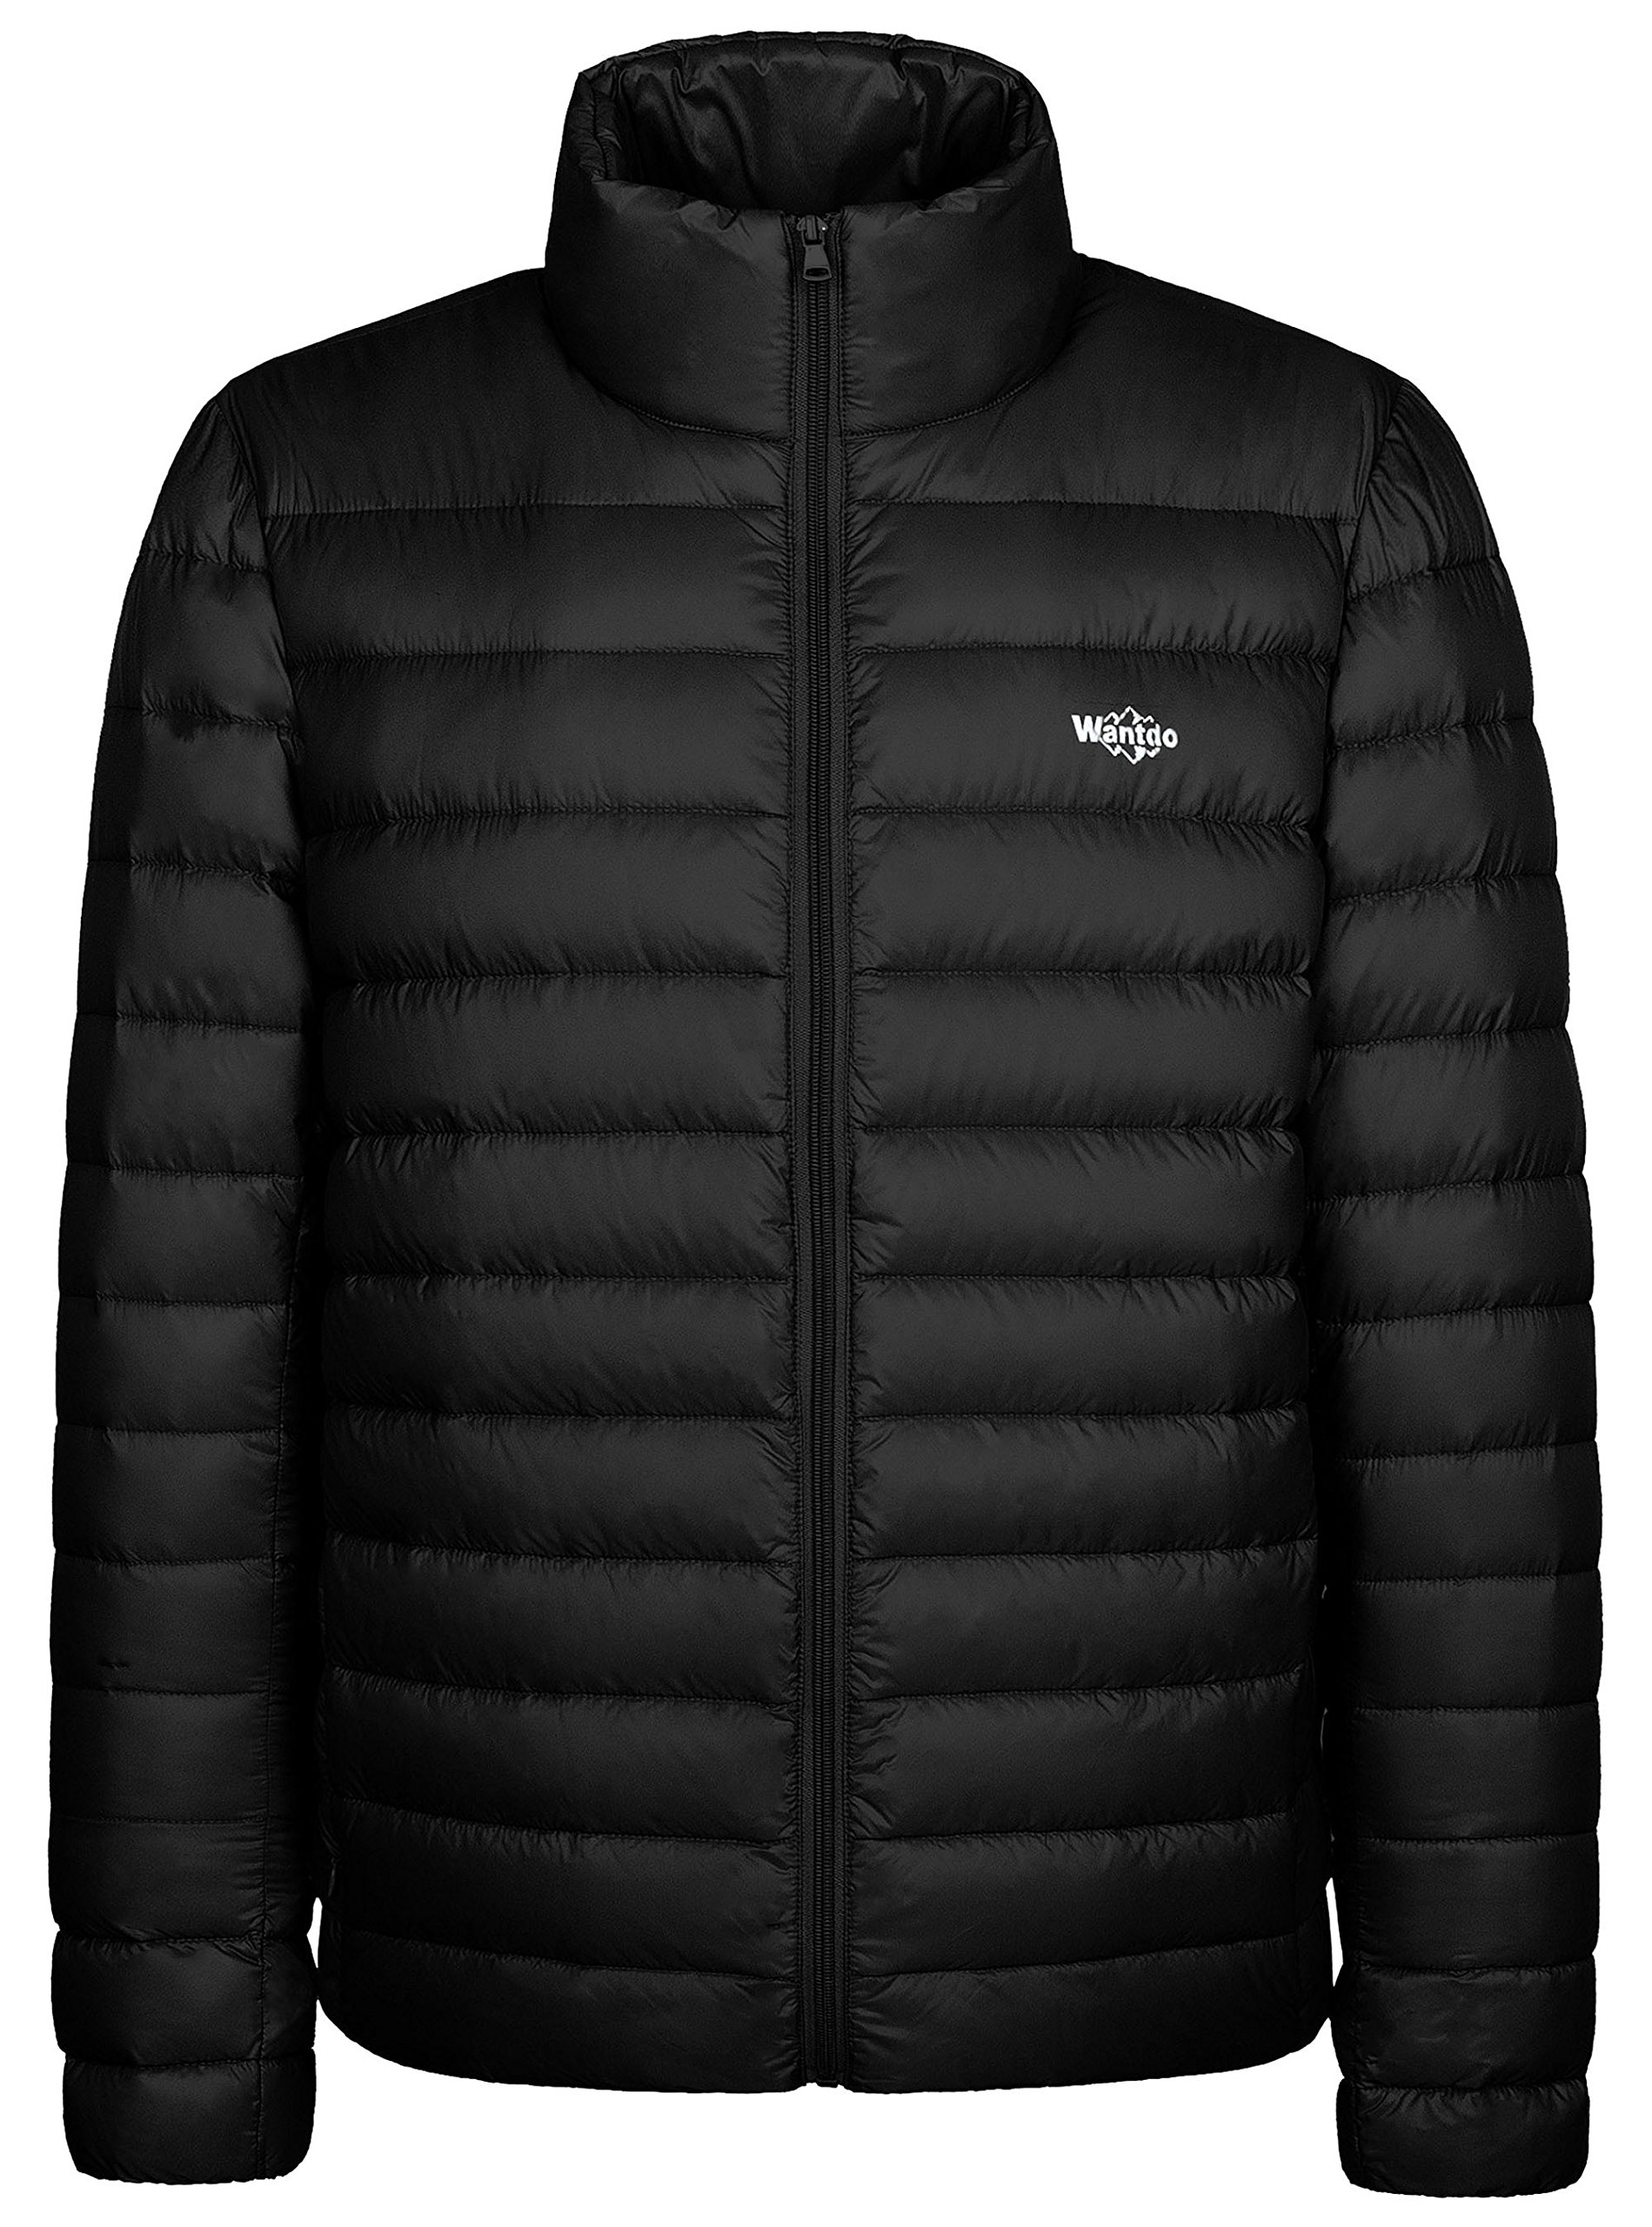 Wantdo Men's Packable Stand Collar Light Weight Down Jacket Large Black by Wantdo